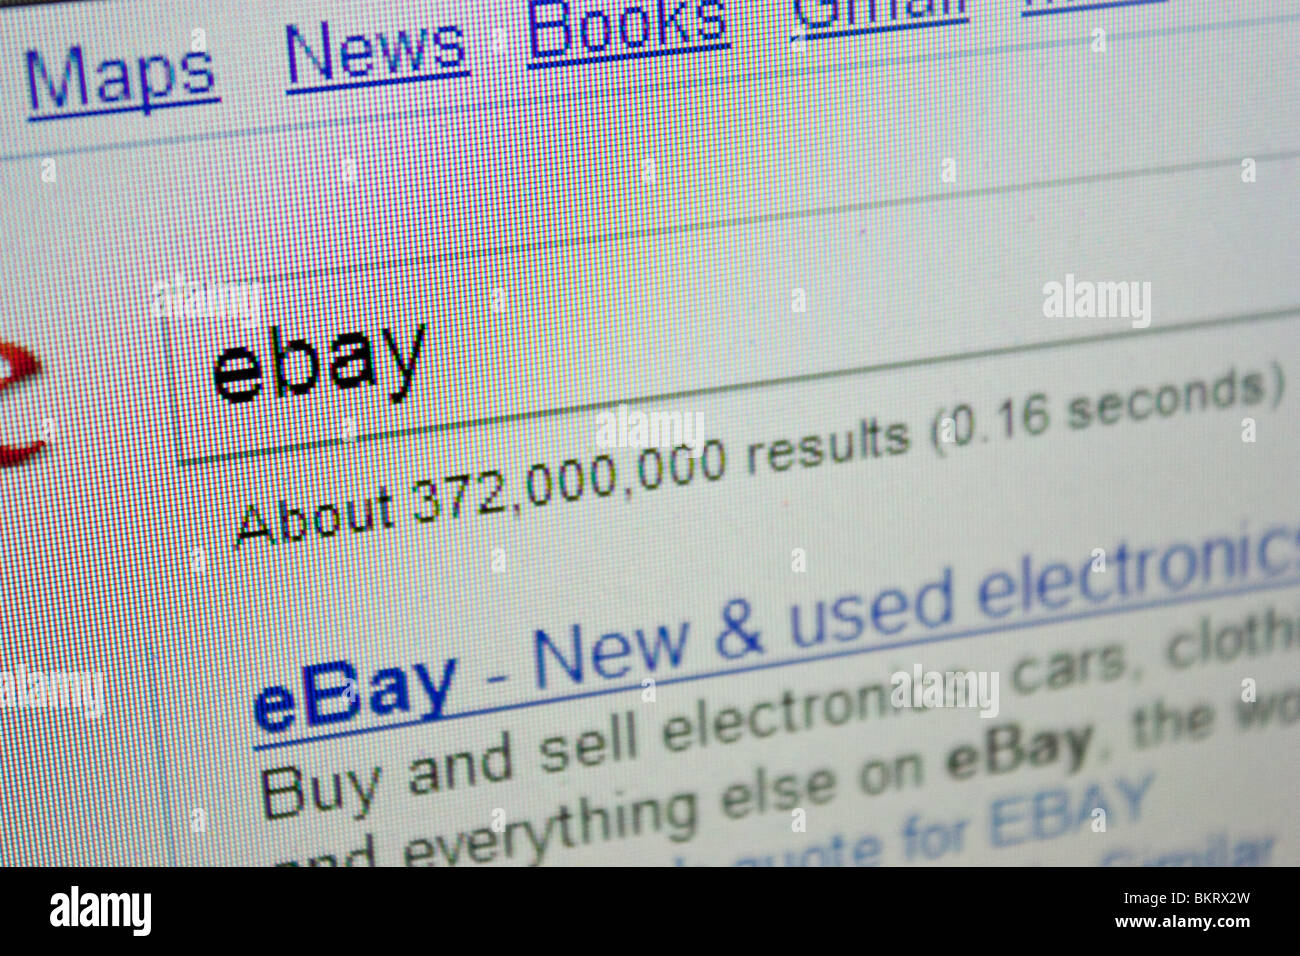 Ebay Auction Website Internet Search Buying Stock Photo Alamy